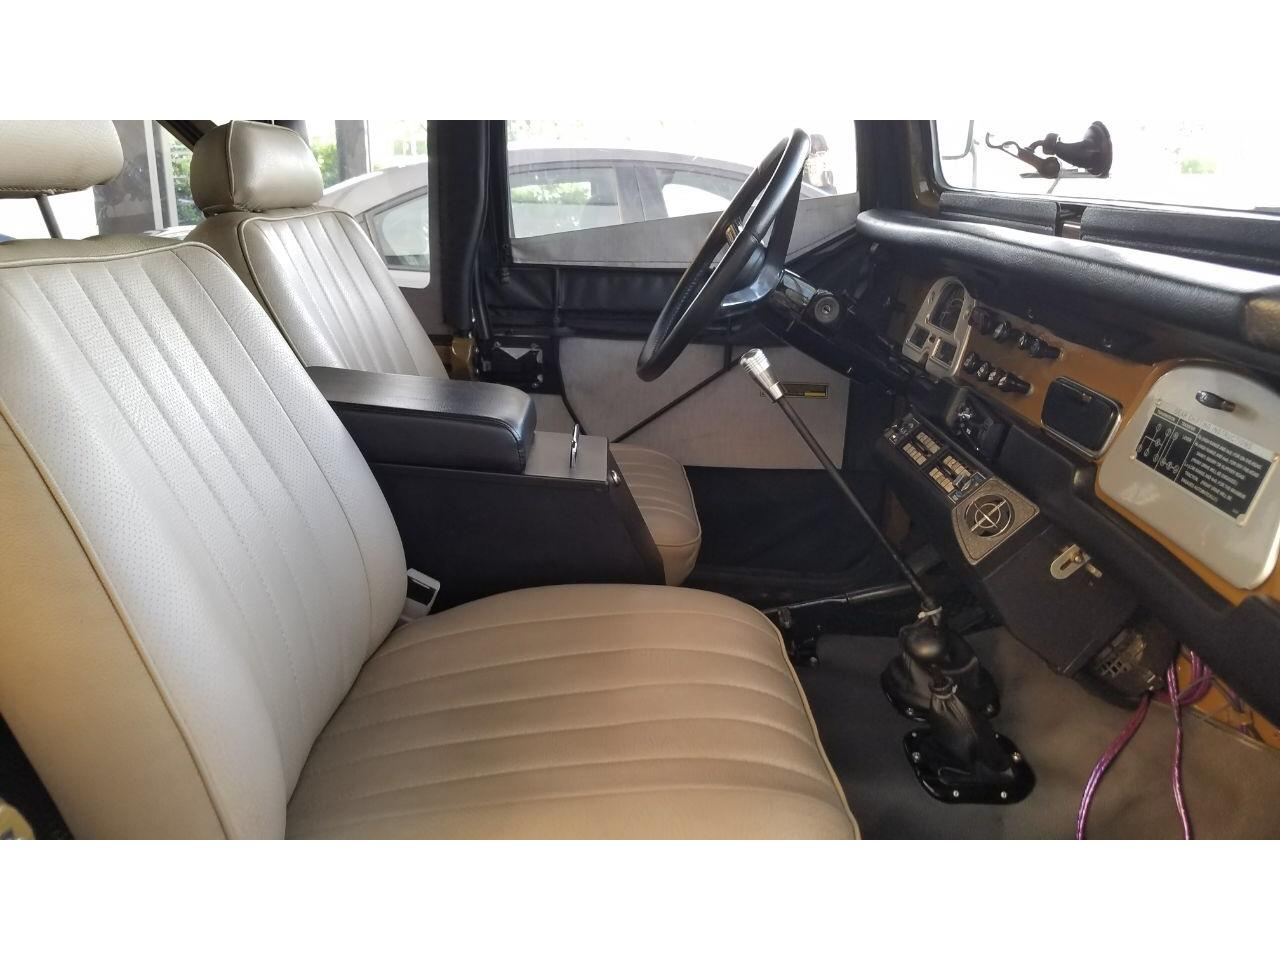 Large Picture of 1980 Toyota Land Cruiser FJ - $50,000.00 Offered by a Private Seller - L8UU